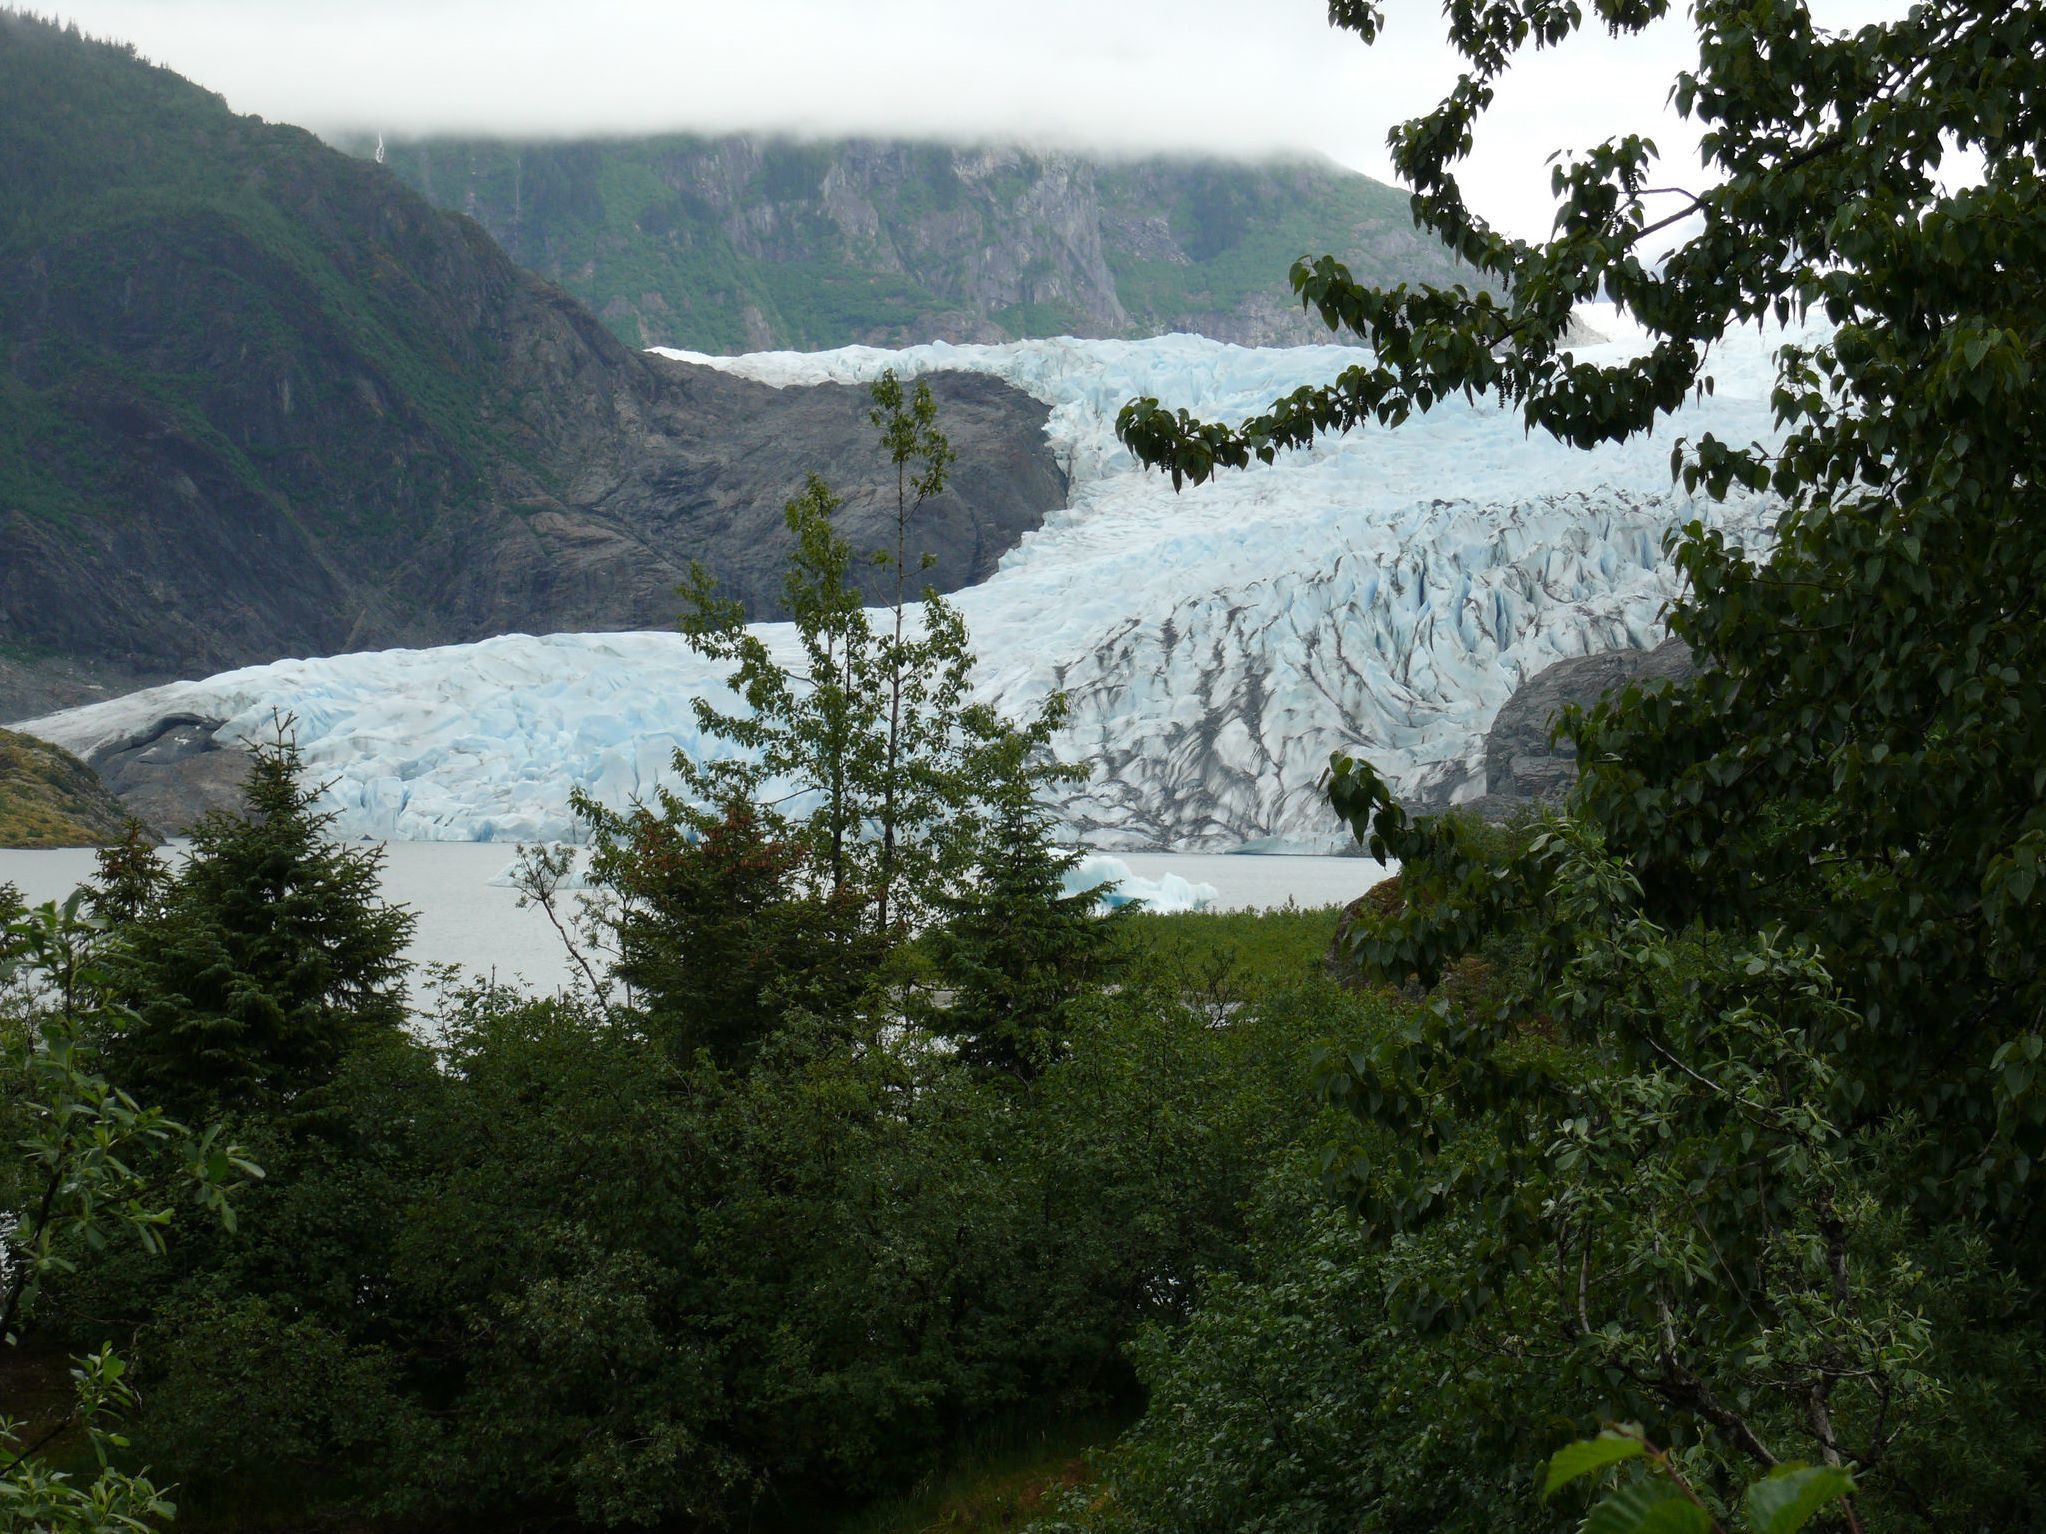 Mendenhall Glacier in Tongass National Forest - Credit: William Welch, USDA